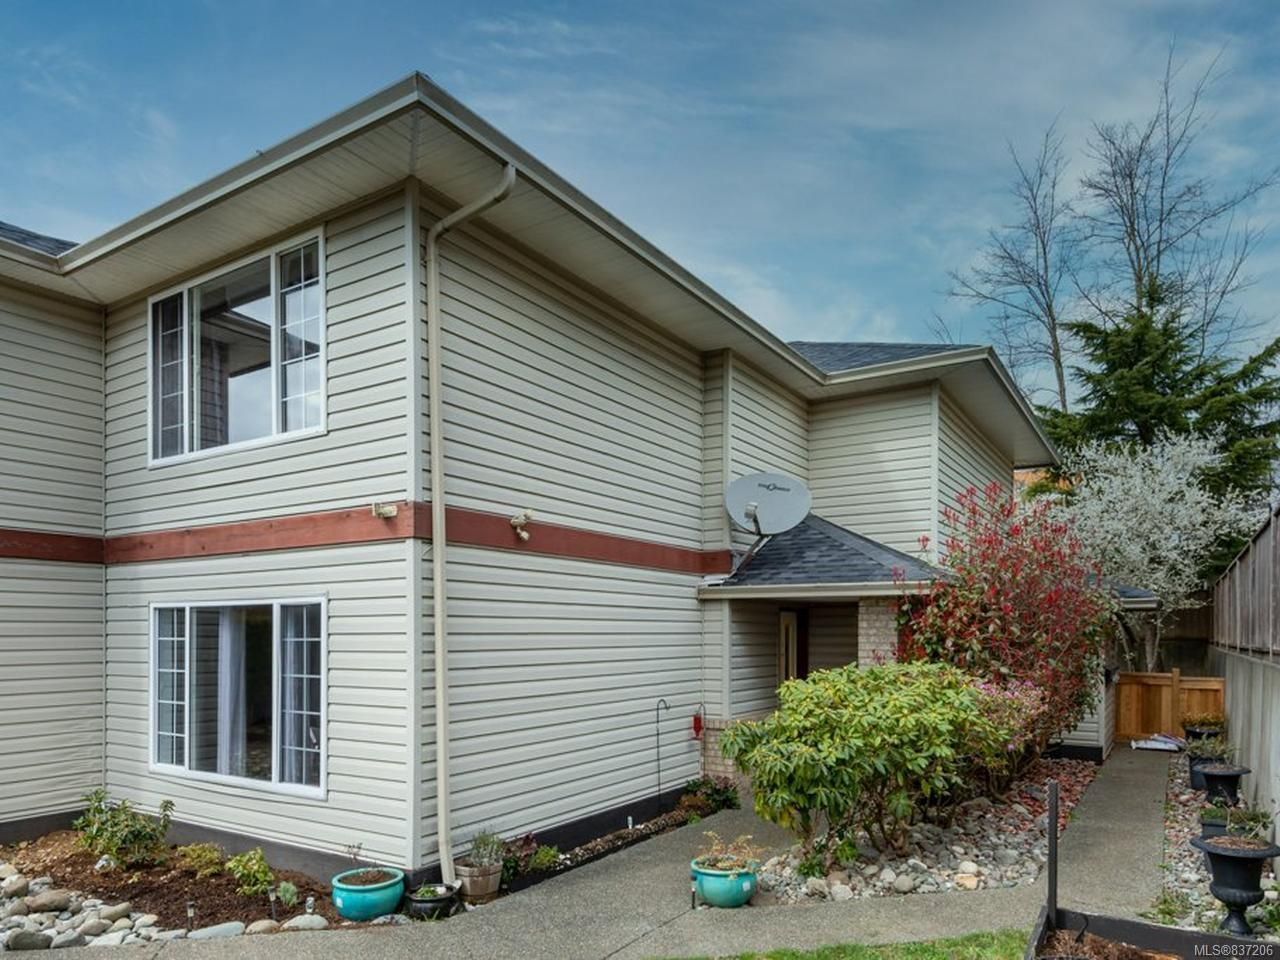 Main Photo: 5 798 ROBRON ROAD in CAMPBELL RIVER: CR Campbell River Central Row/Townhouse for sale (Campbell River)  : MLS®# 837206